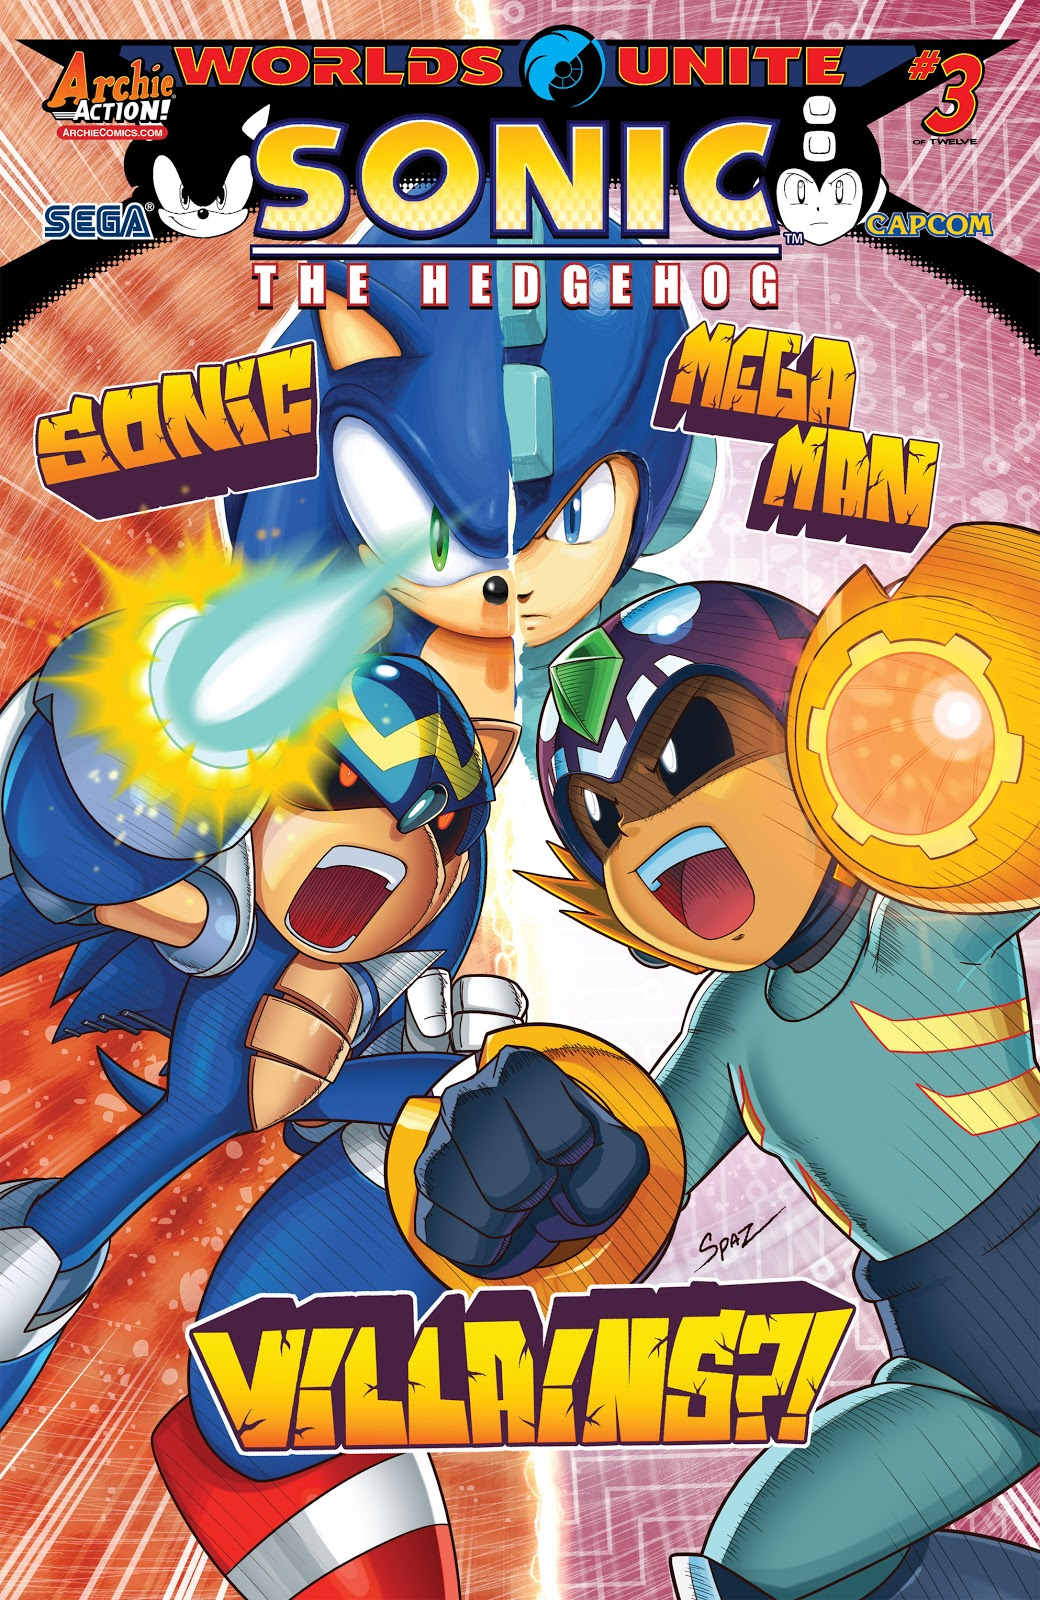 Hedgehogs Can T Swim Sonic The Hedgehog Issue 273